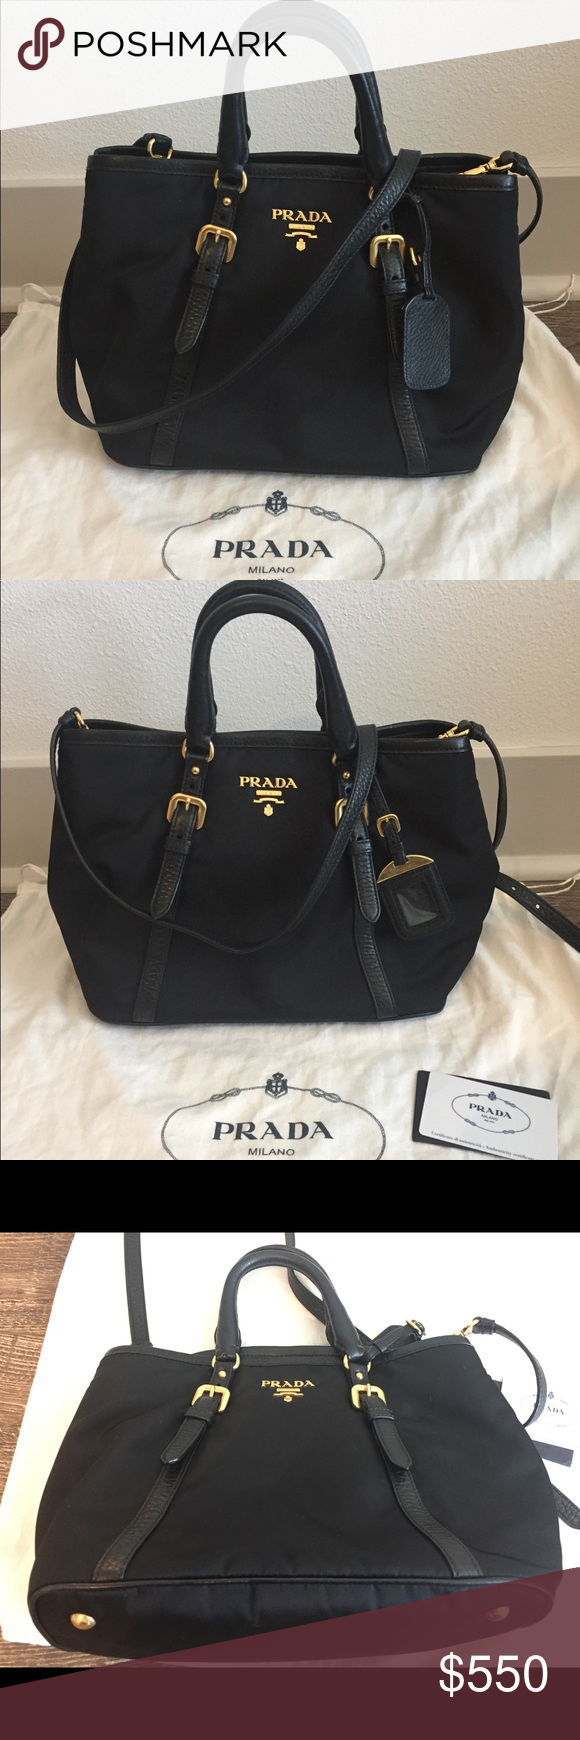 50e3e87c362b Prada nylon small tote w/ shoulder strap Prada BN1841 small black nylon  tote with shoulder strap. Comes with dust bag and authenticity…